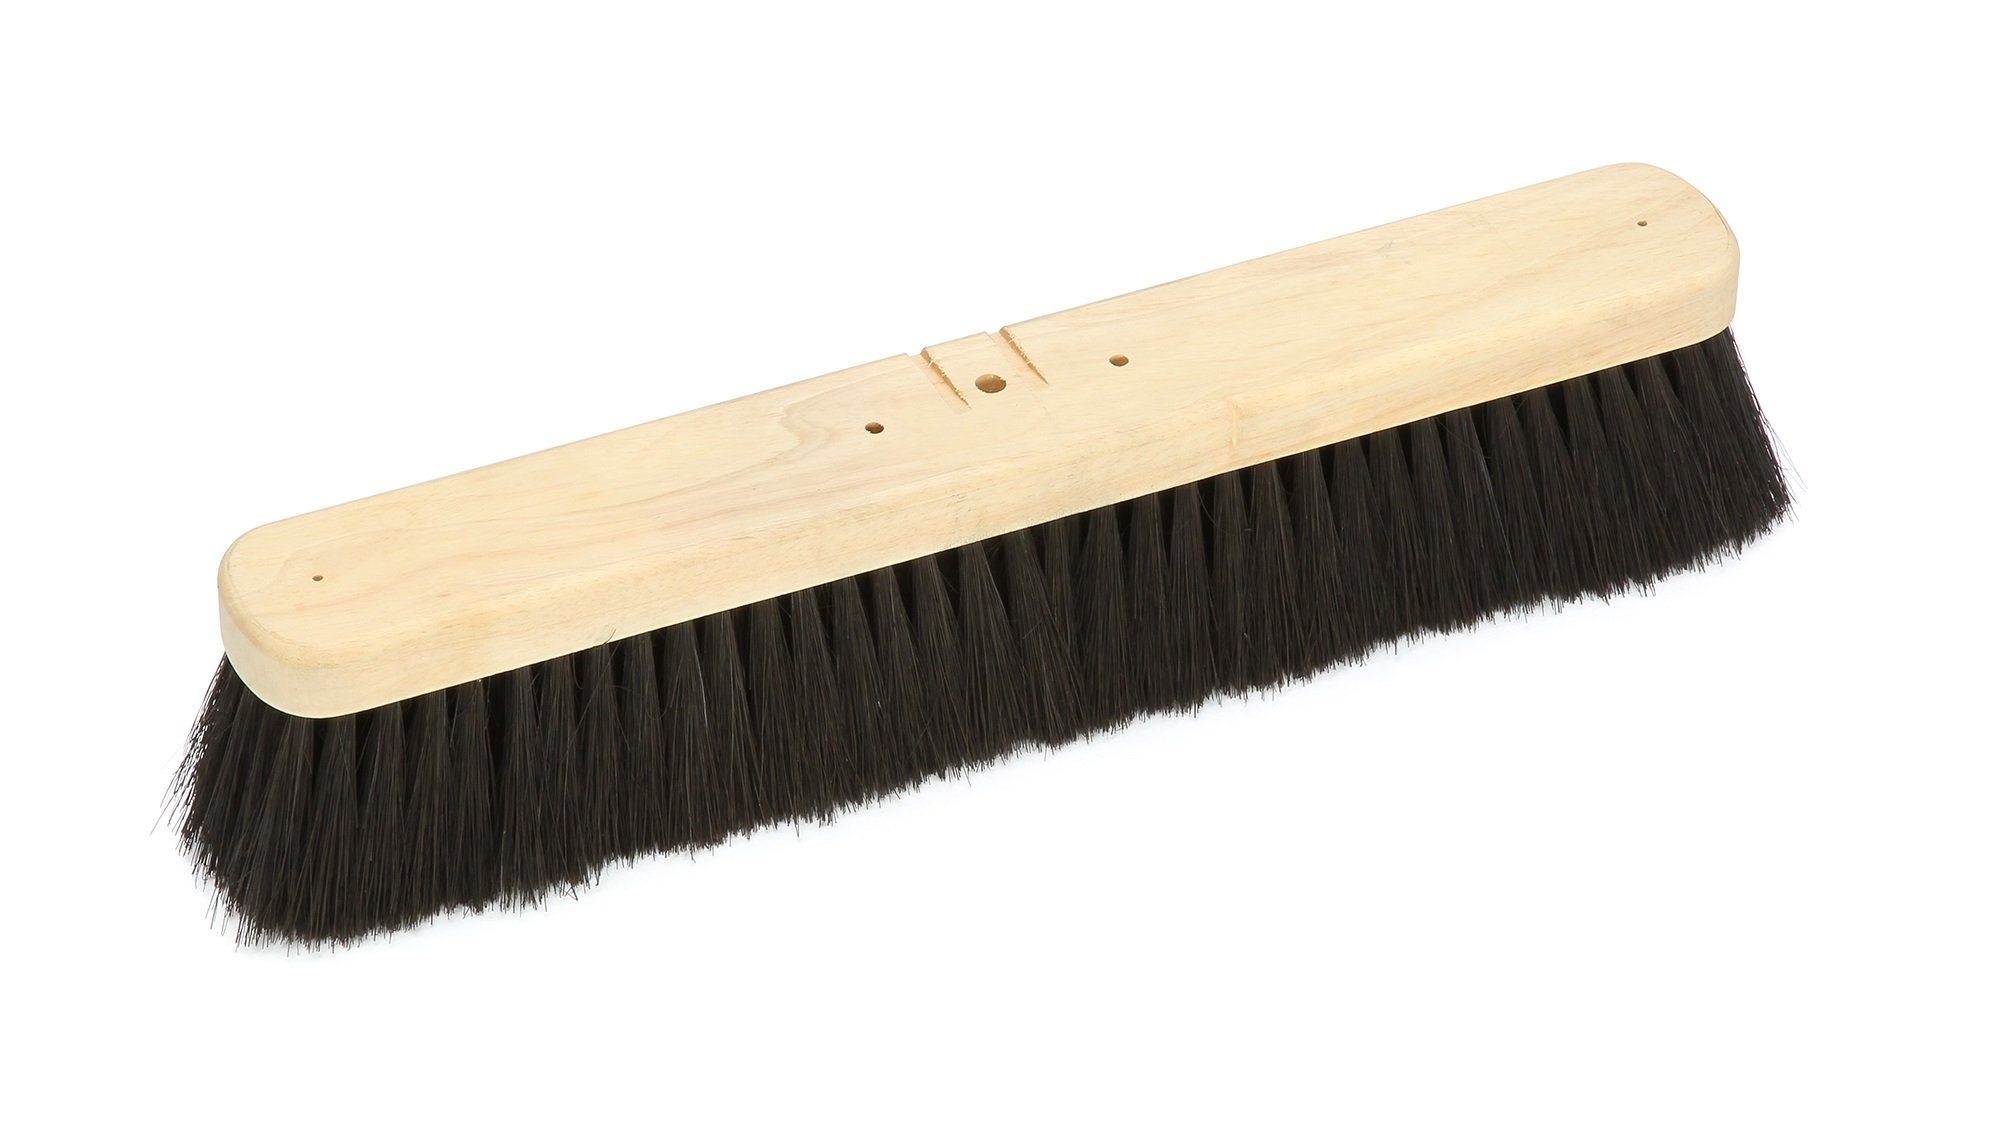 Harper Brush 143812 Broom Head, Tampico Fiber, All Purpose, Semi Smooth Surface, Hard Wood, 18'' (Pack of 6)